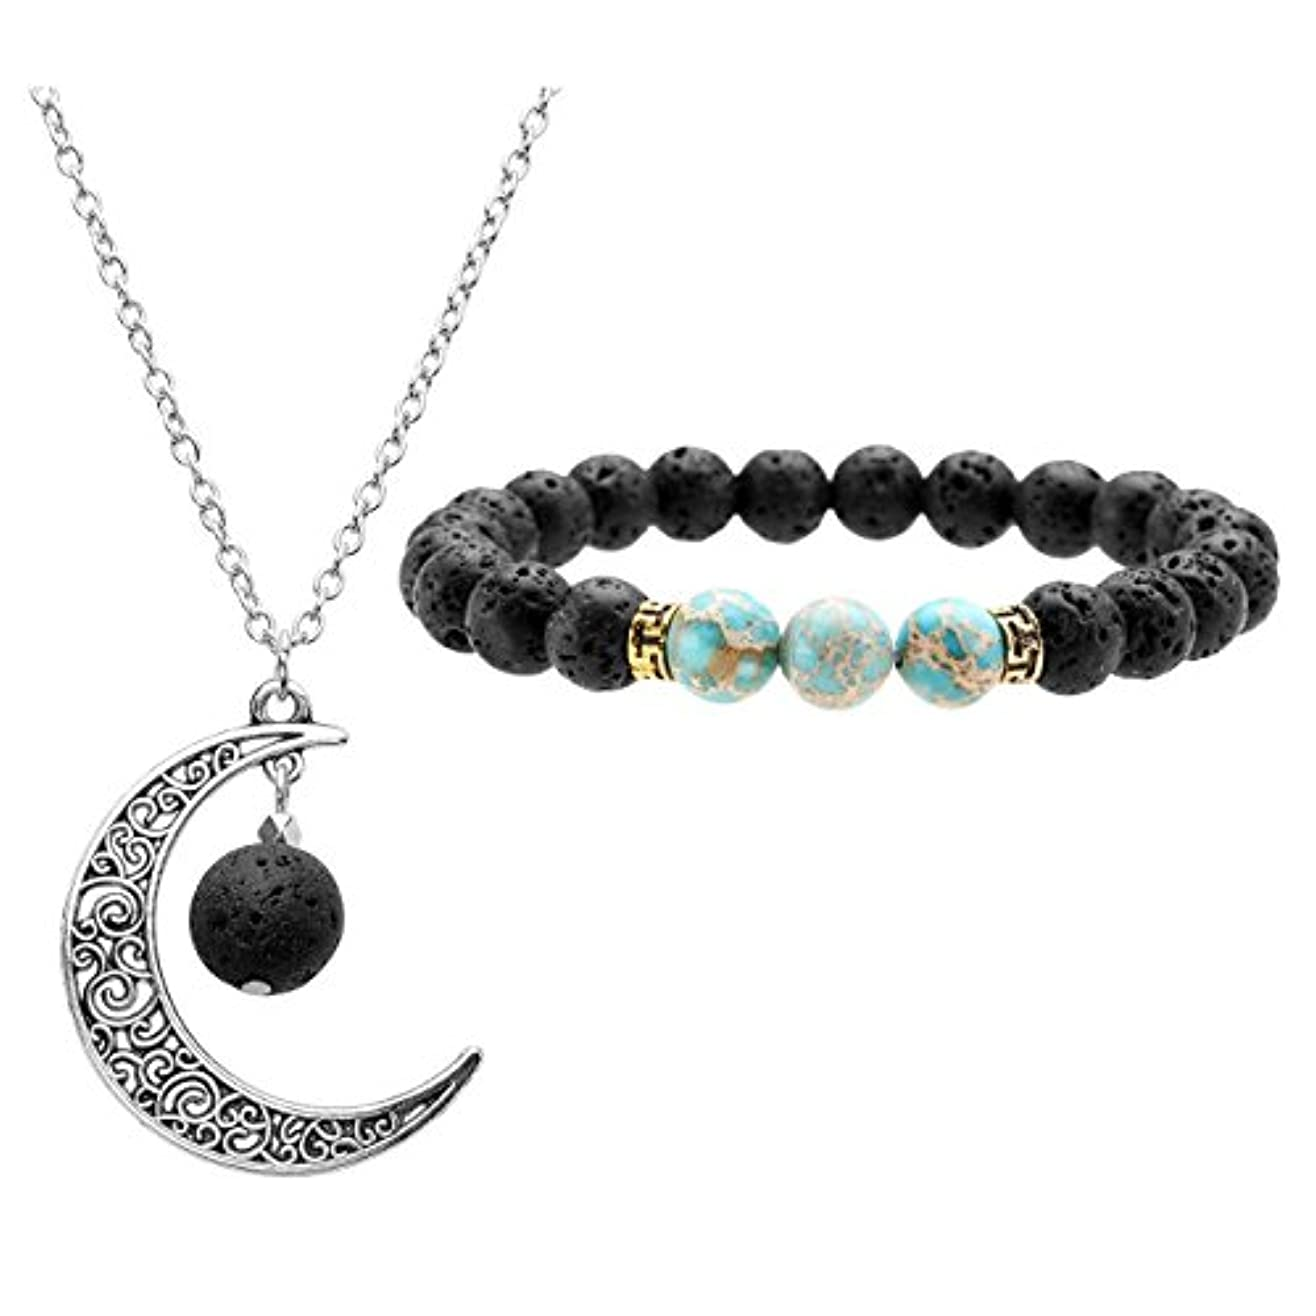 ストライド原子炉コンソールJOVIVI Lava Stone Aromatherapy Essential Oil Diffuser Necklace Bracelet Set- Crescent Moon Jewellery